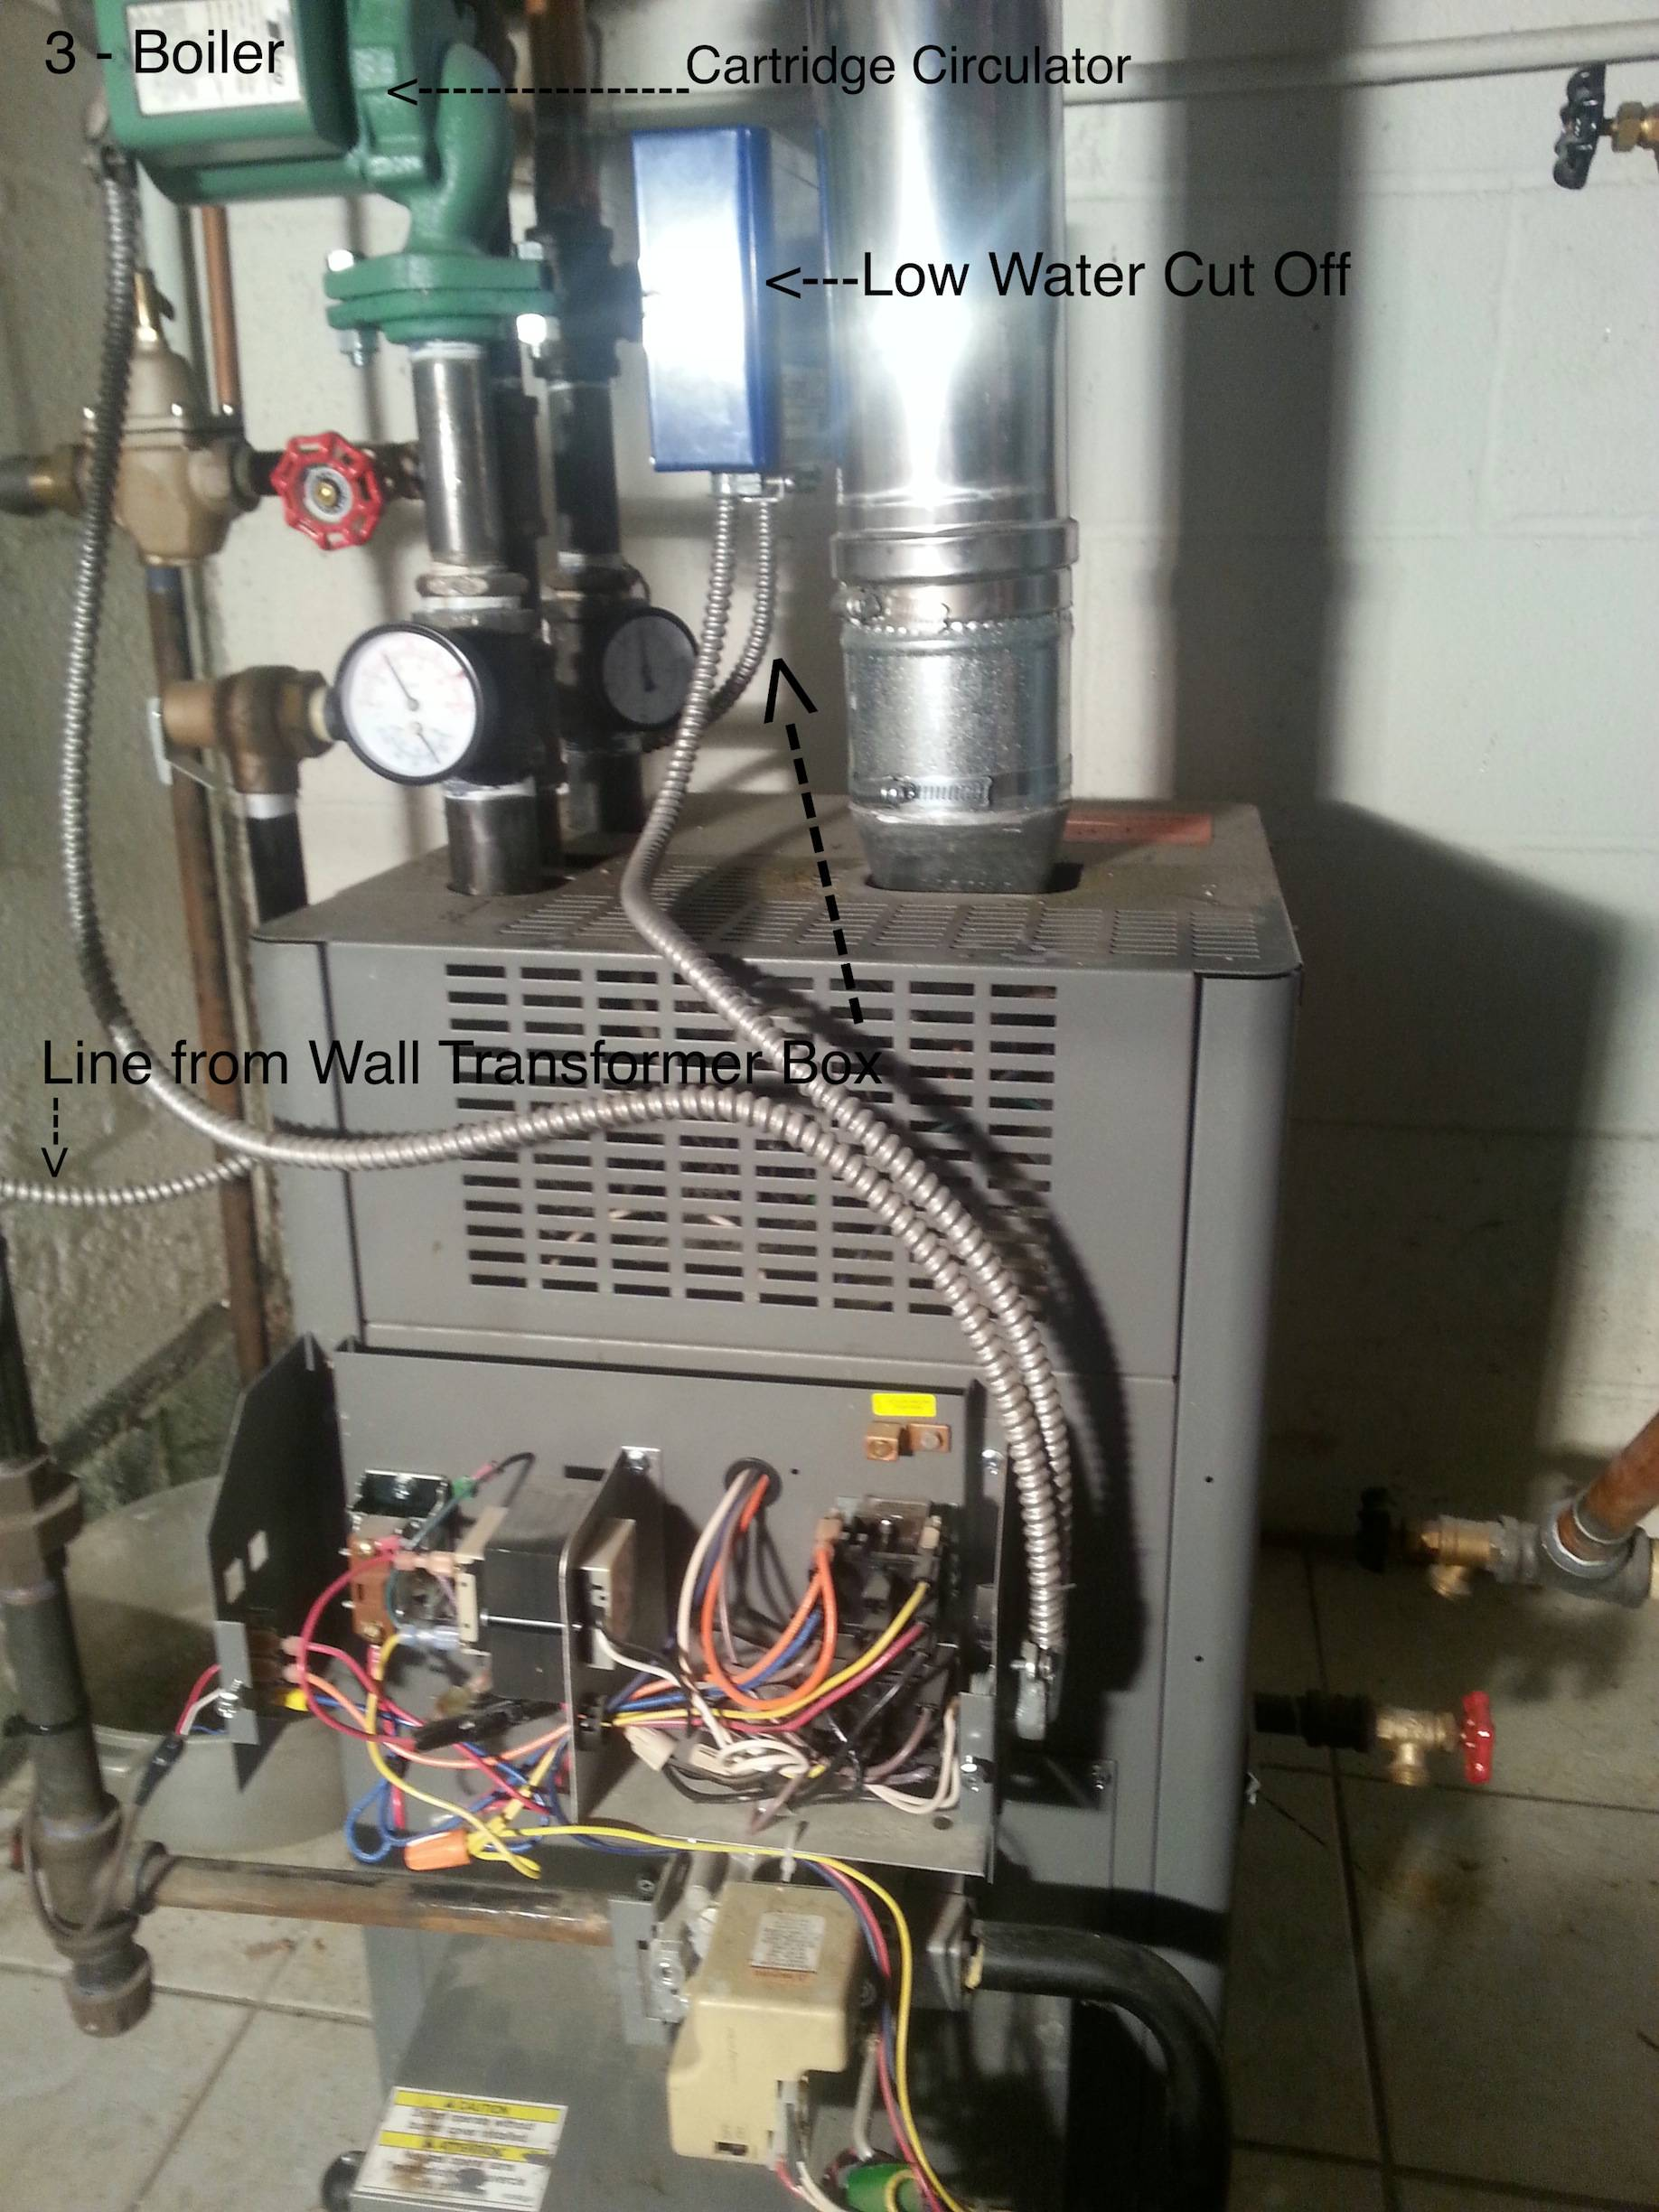 hvac transformer wiring diagram chevy745 boiler - where do i connect my c wire from thermostat when there are two transformers? home ...